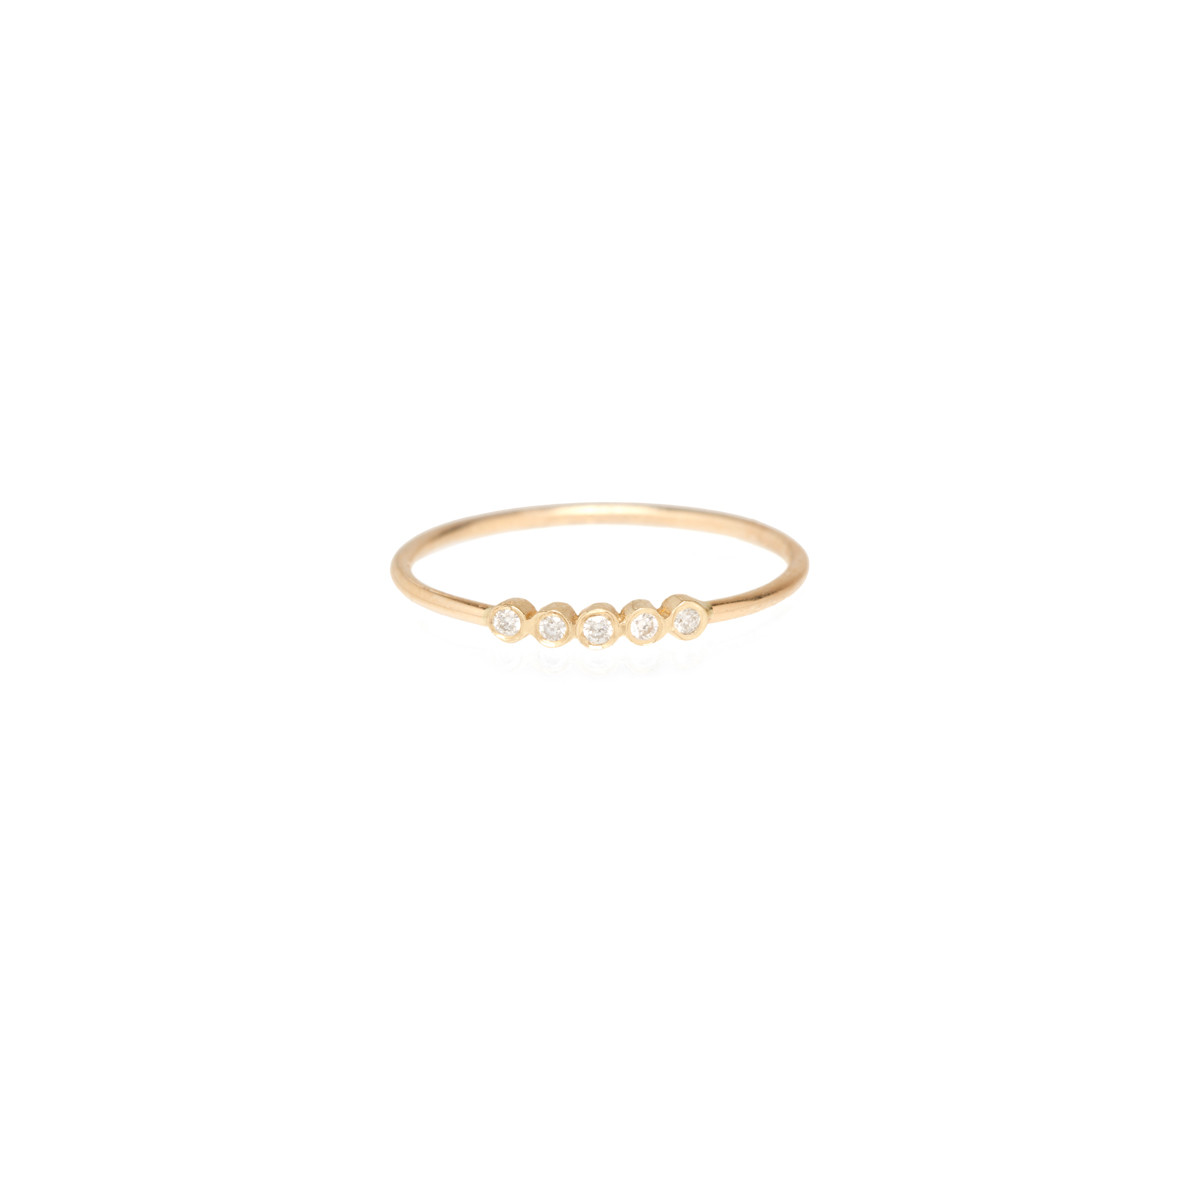 Zoe Chicco 14k 5 Tiny Diamond Bezel Ring $285 The Best Part About This  Understated Ring? The Ability To Pair It With More Simple Rings (future  Anniversary